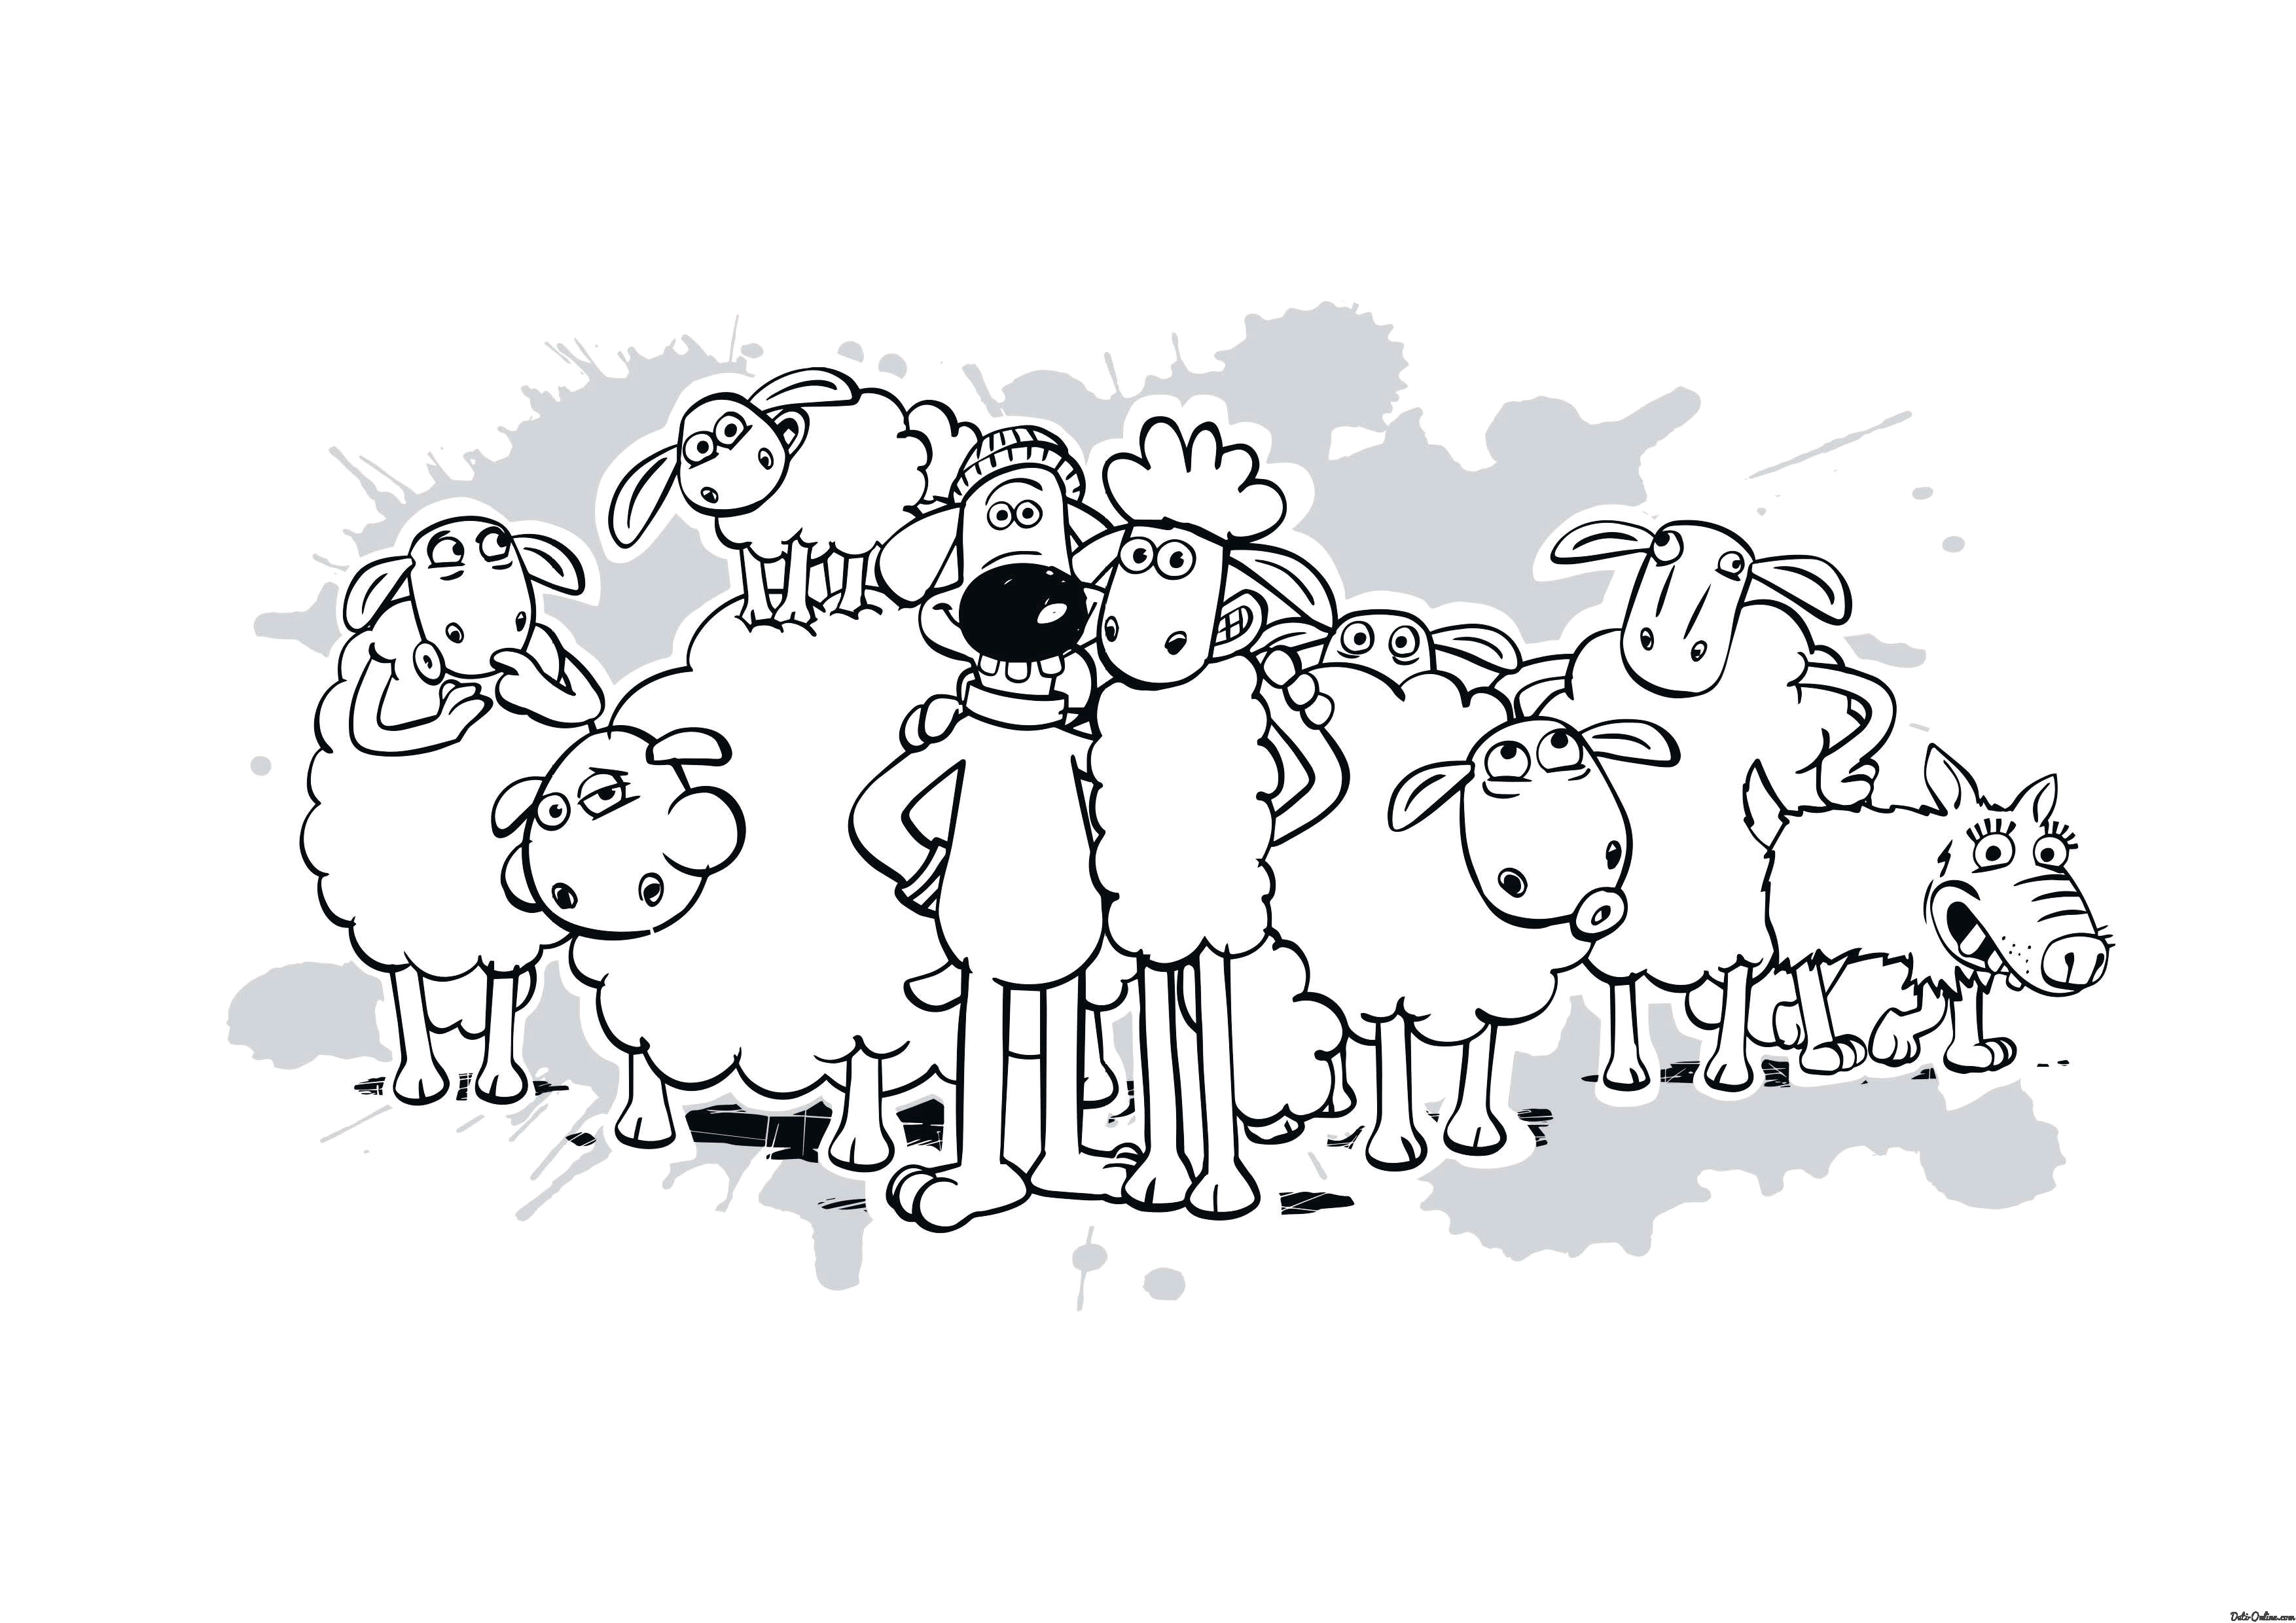 Shaun The Sheep Coloring Pages For Kids To Print For Free Shaun The Sheep Colouring Pages